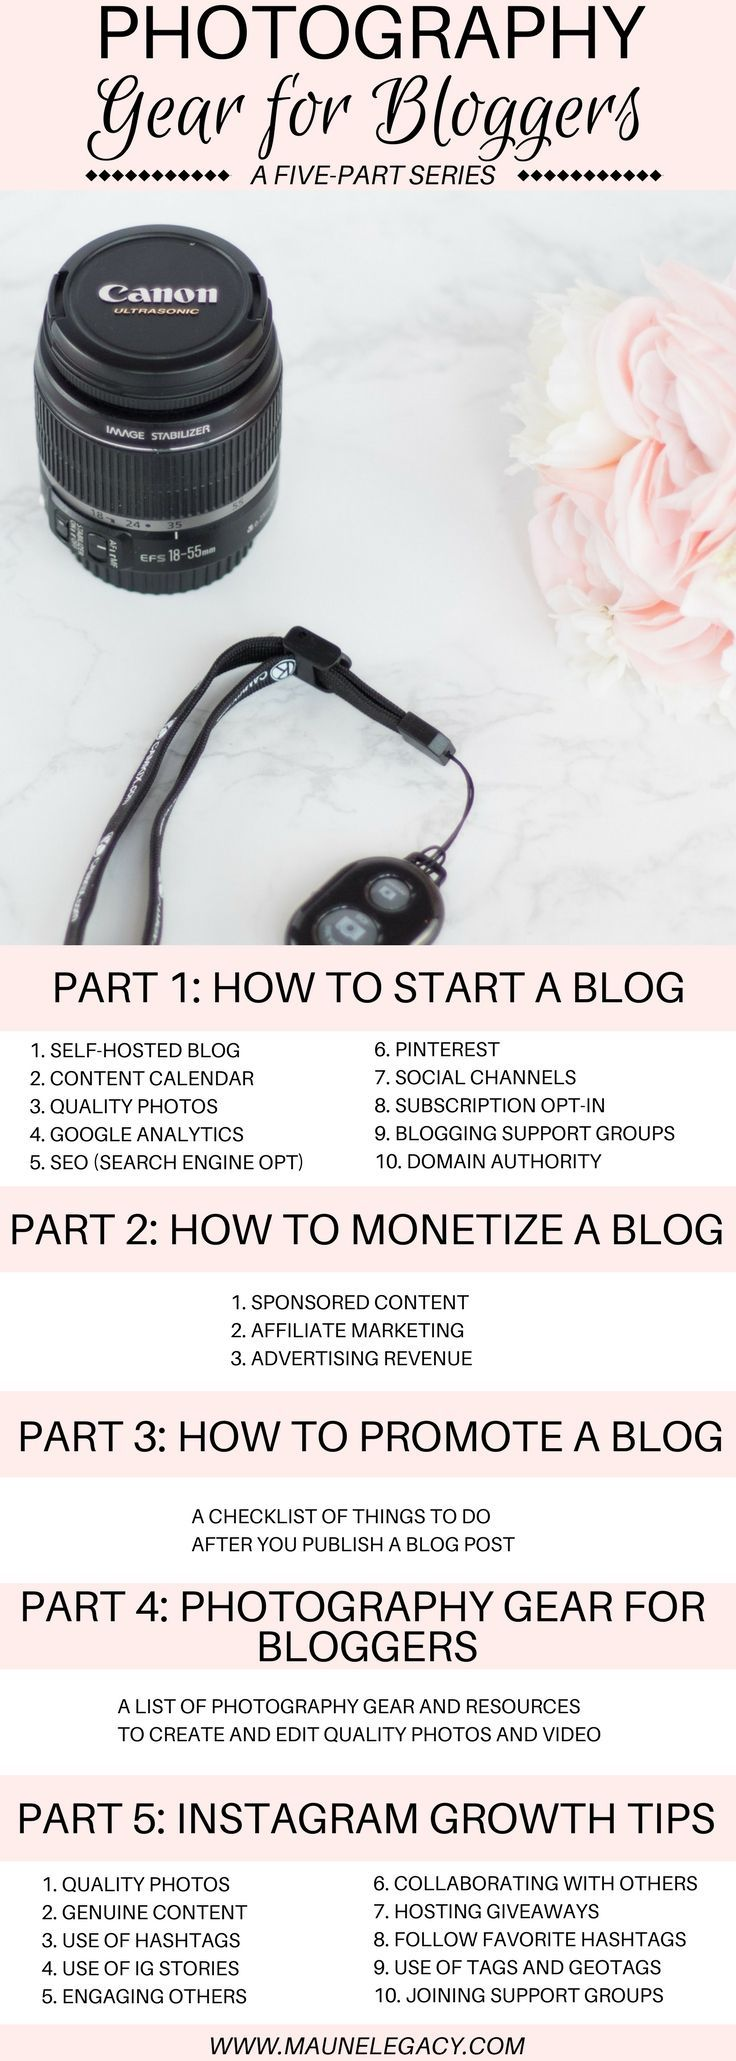 This list of essential photography gear for bloggers is part four of a five-part series on how to start a blog, to help you produce and edit beautiful, professional quality photos and video which is a key to becoming a successful blogger, Influencer and content creator.